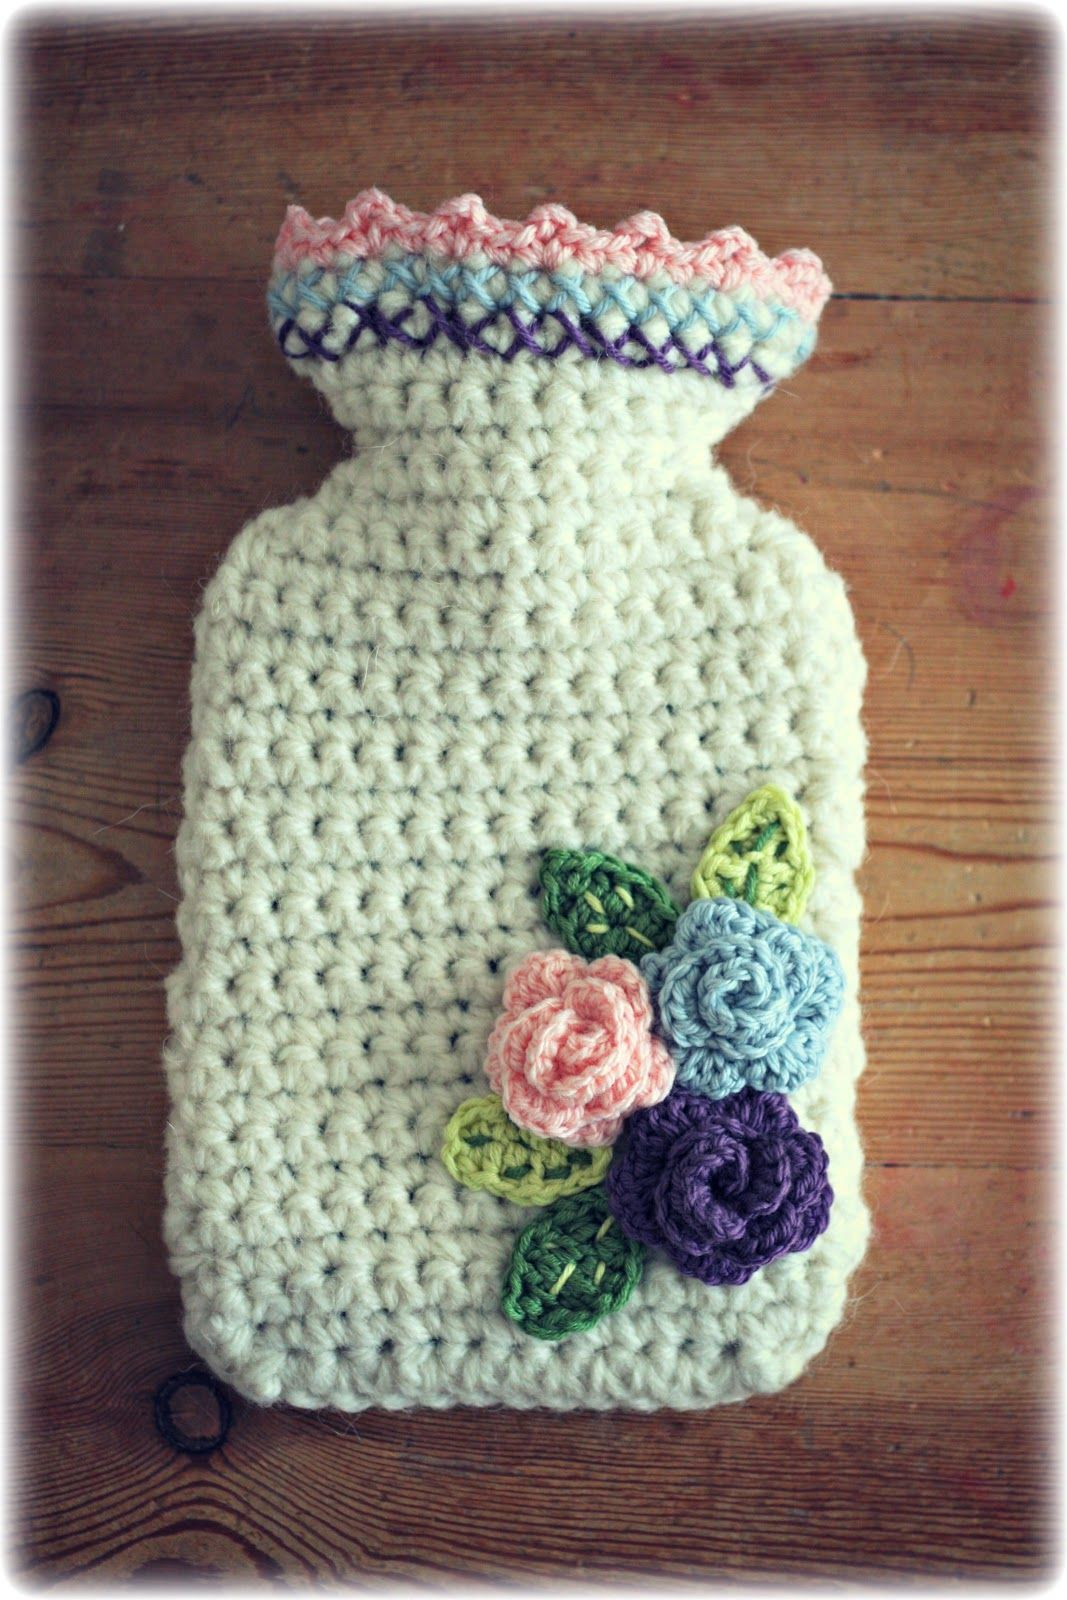 Coco Rose Diaries: Hot Water Bottle Cover Tutorial | crochet ...